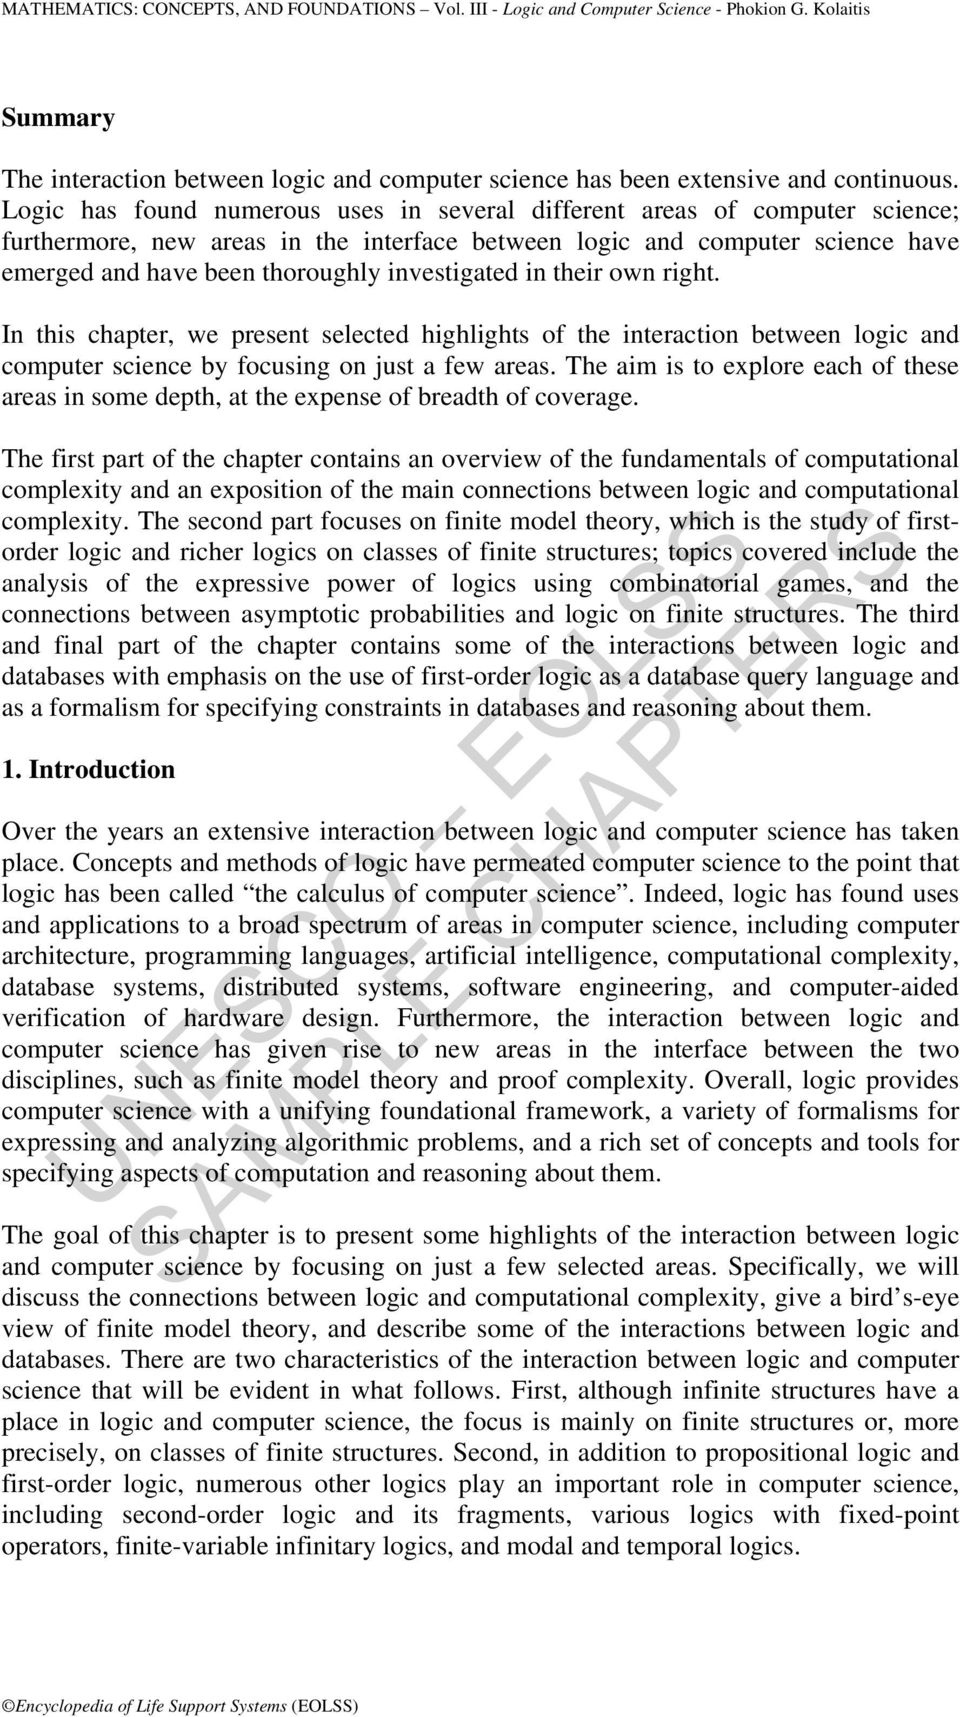 investigated in their own right. In this chapter, we present selected highlights of the interaction between logic and computer science by focusing on just a few areas.